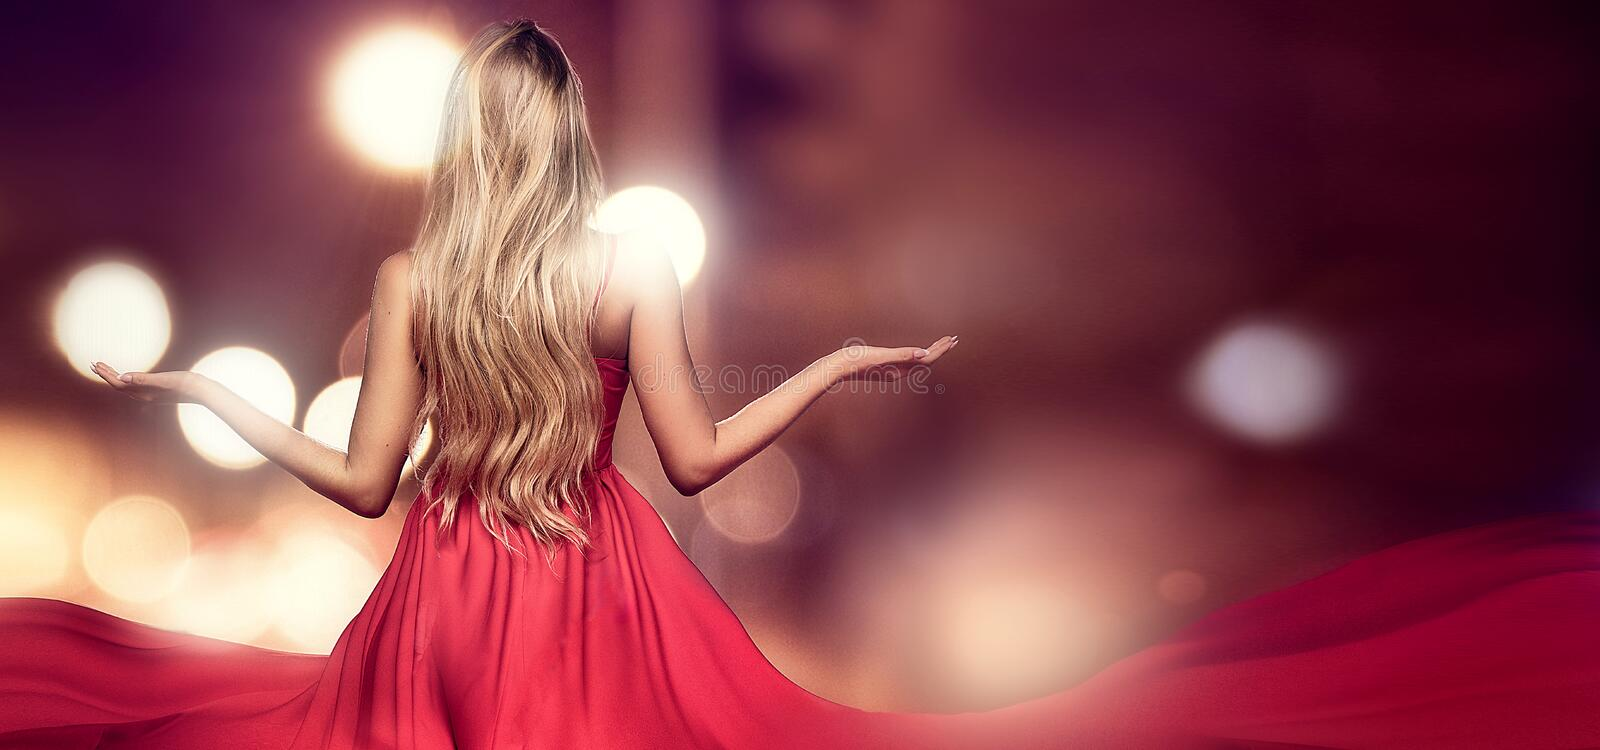 Blonde lady in red elegant maxi dress. royalty free stock photos